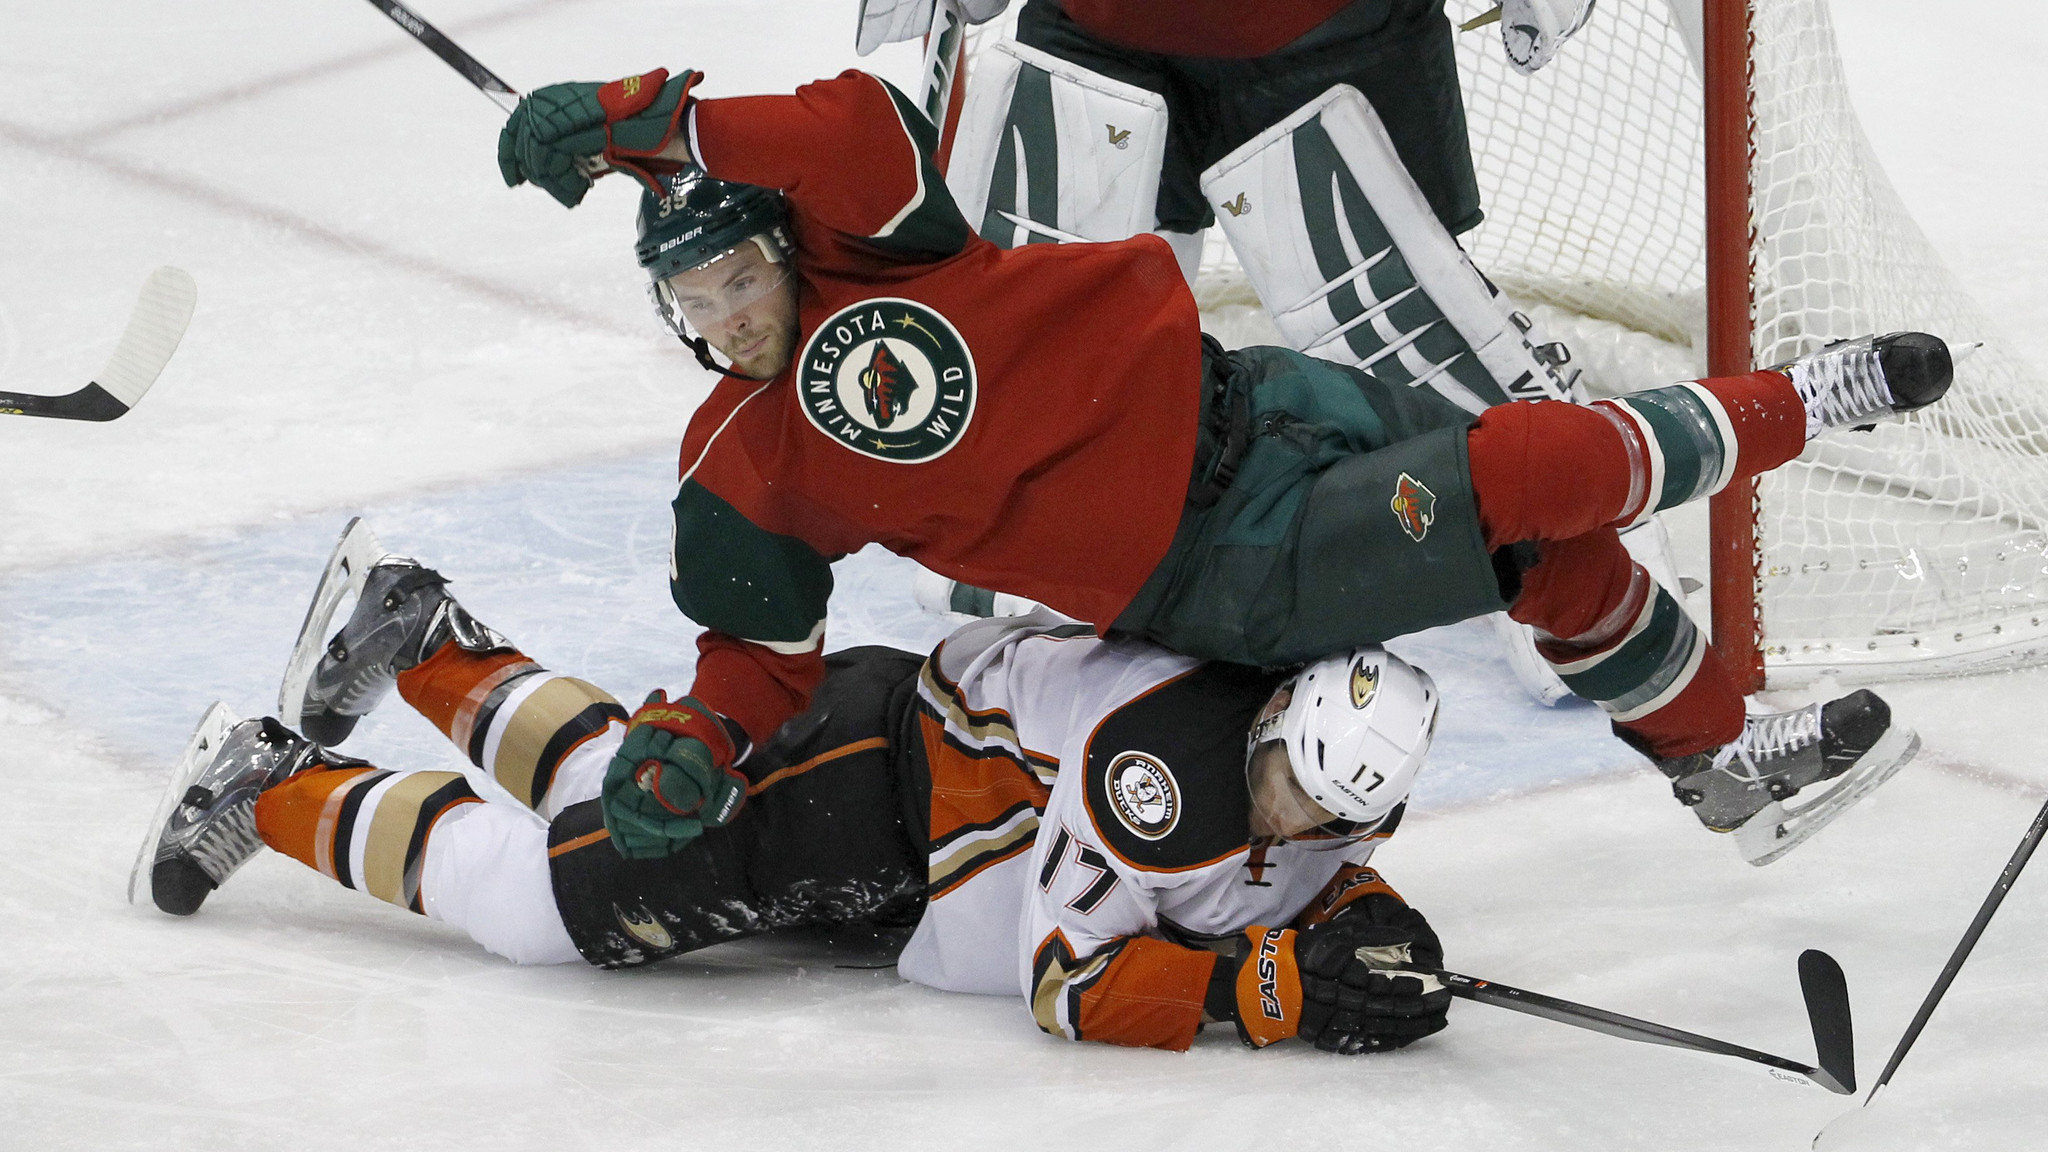 What We Learned From The Ducks' 5-4 Win Over Minnesota Wild